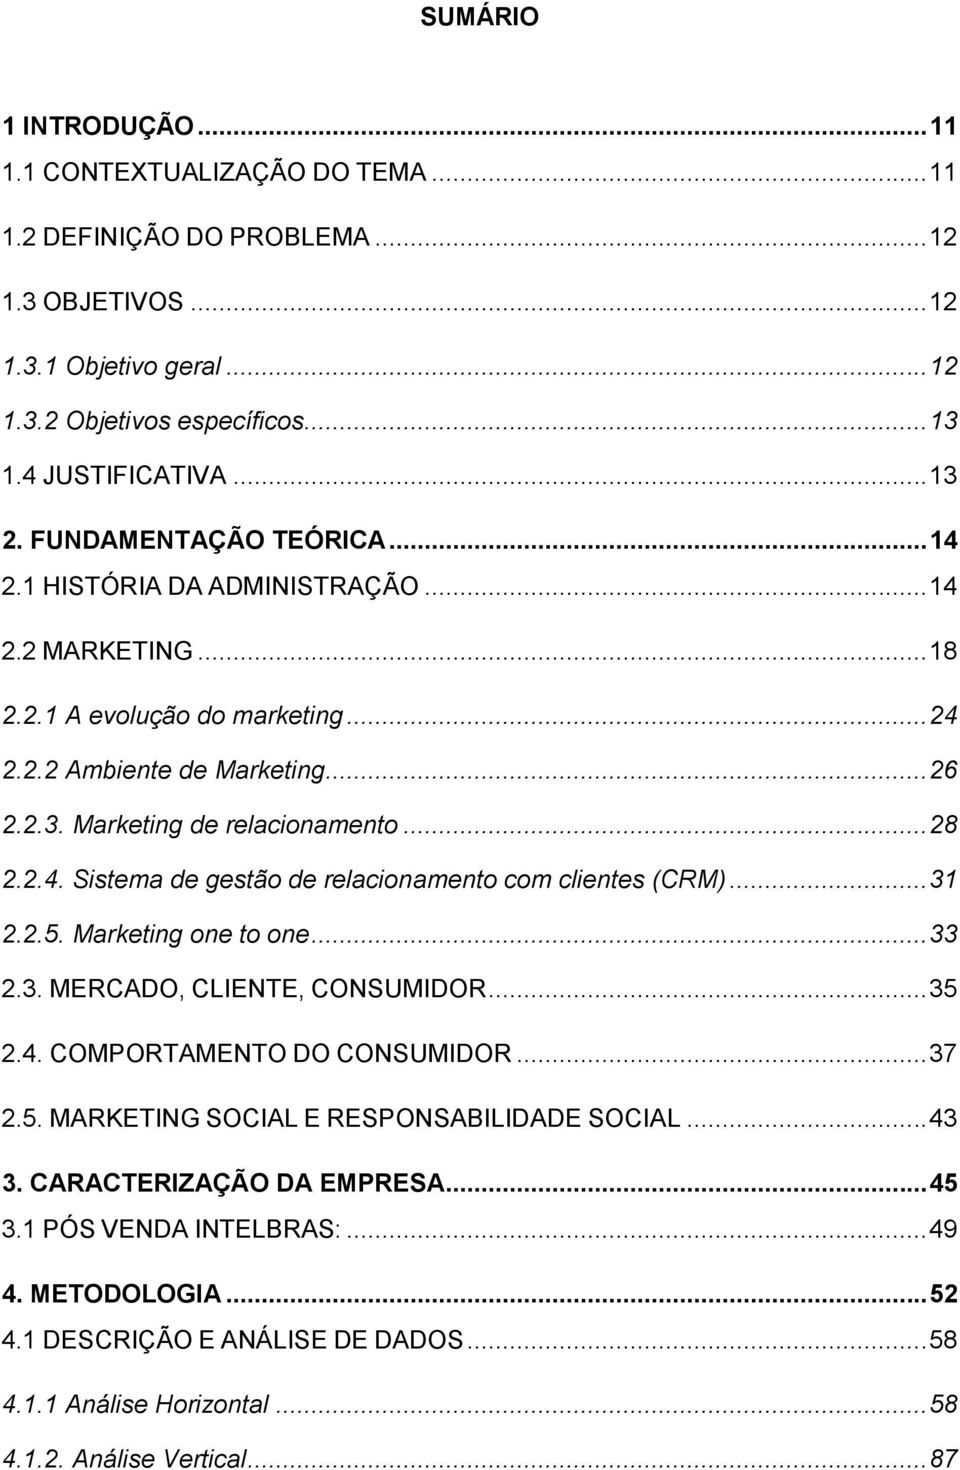 .. 28 2.2.4. Sistema de gestão de relacionamento com clientes (CRM)... 31 2.2.5. Marketing one to one... 33 2.3. MERCADO, CLIENTE, CONSUMIDOR... 35 2.4. COMPORTAMENTO DO CONSUMIDOR... 37 2.5. MARKETING SOCIAL E RESPONSABILIDADE SOCIAL.